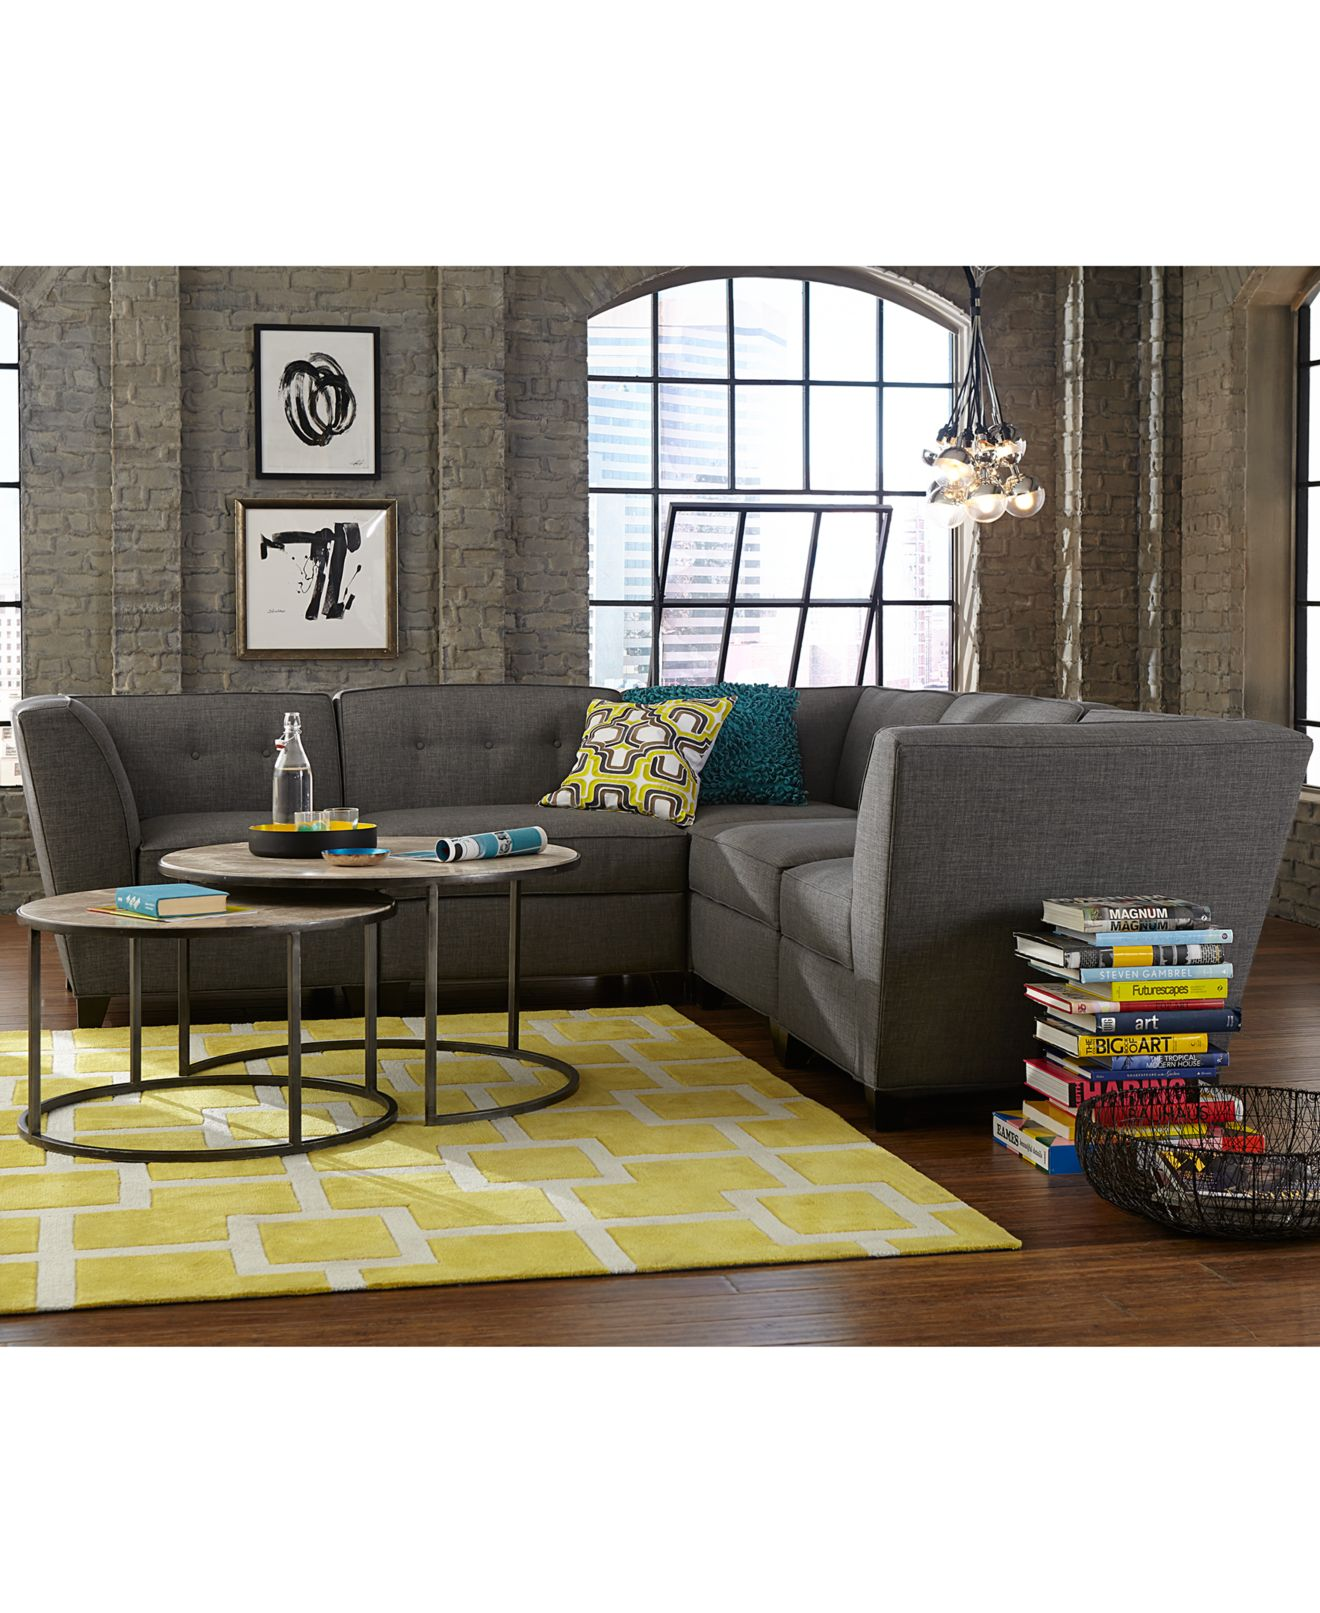 Harper fabric modular living room furniture collection with sets pieces